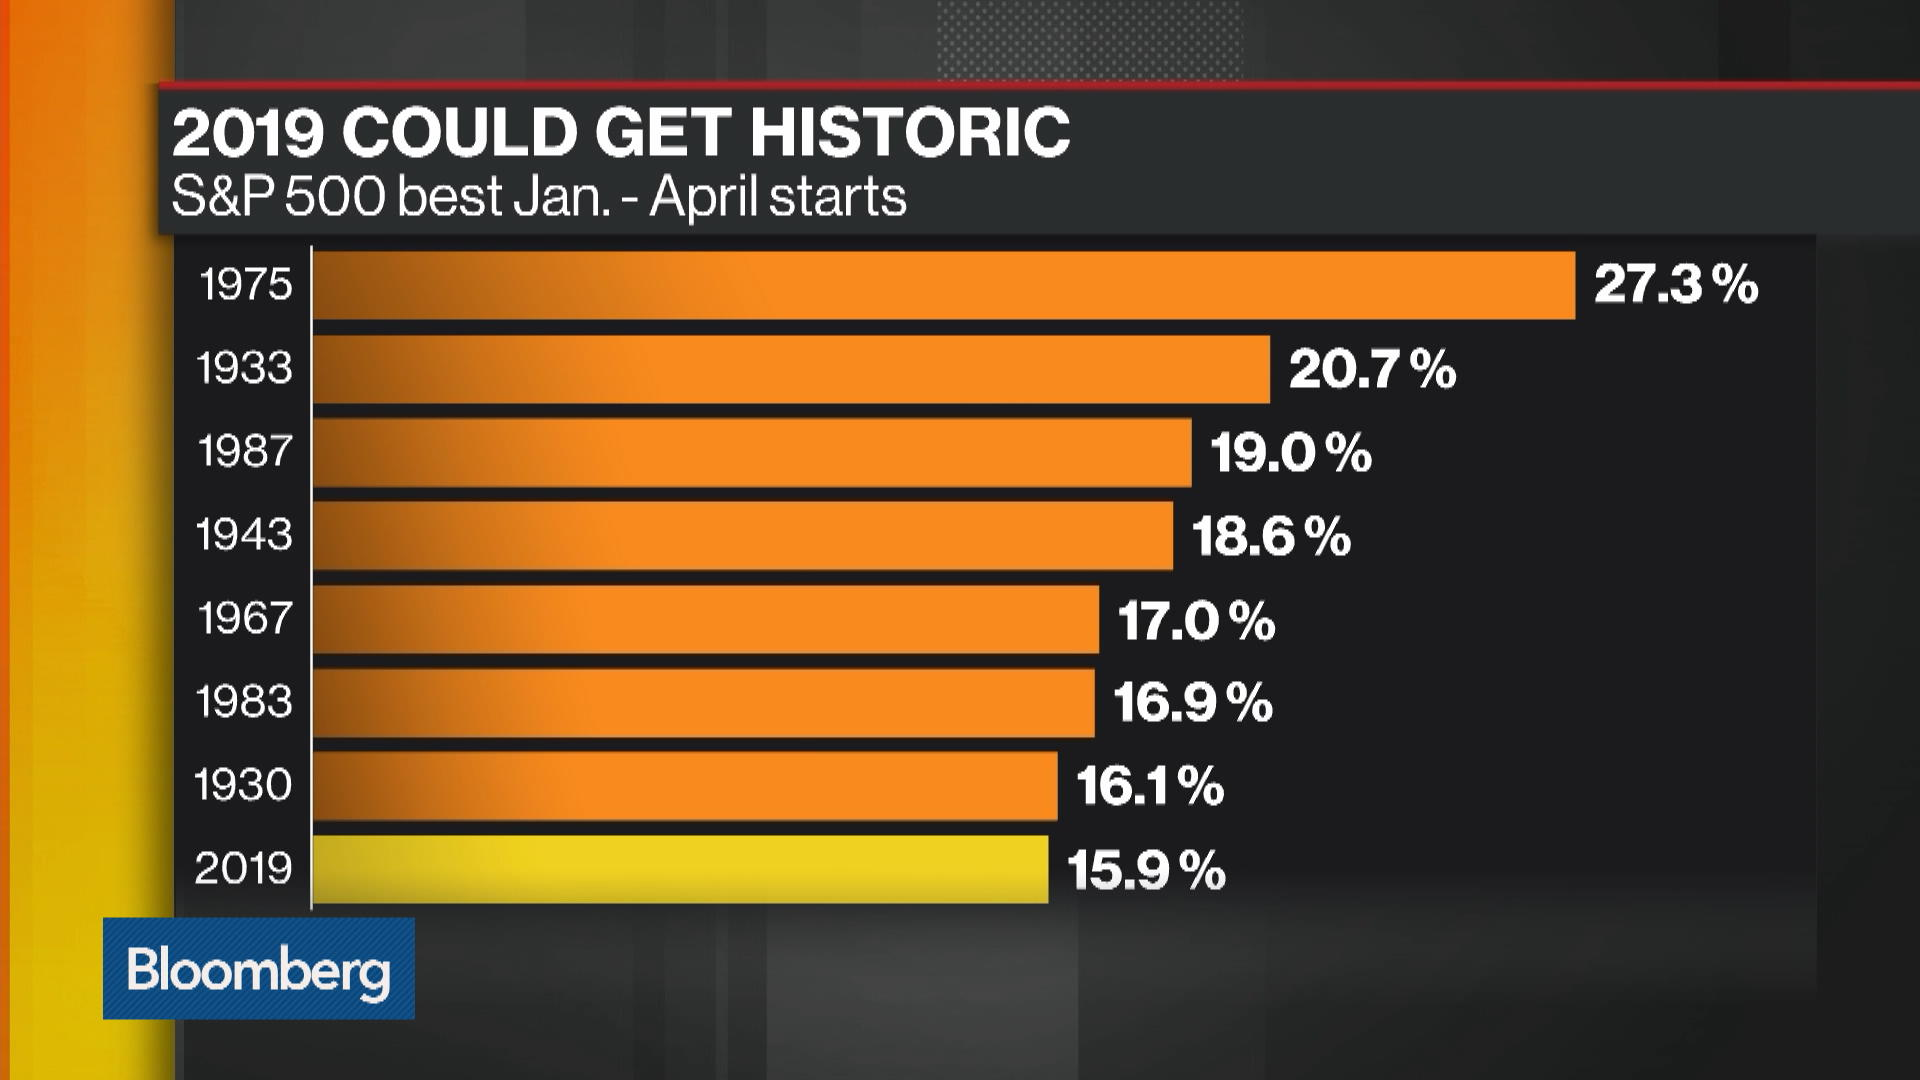 Bloomberg Market Wrap 4/22: Small Caps, S&P 500, Spotify